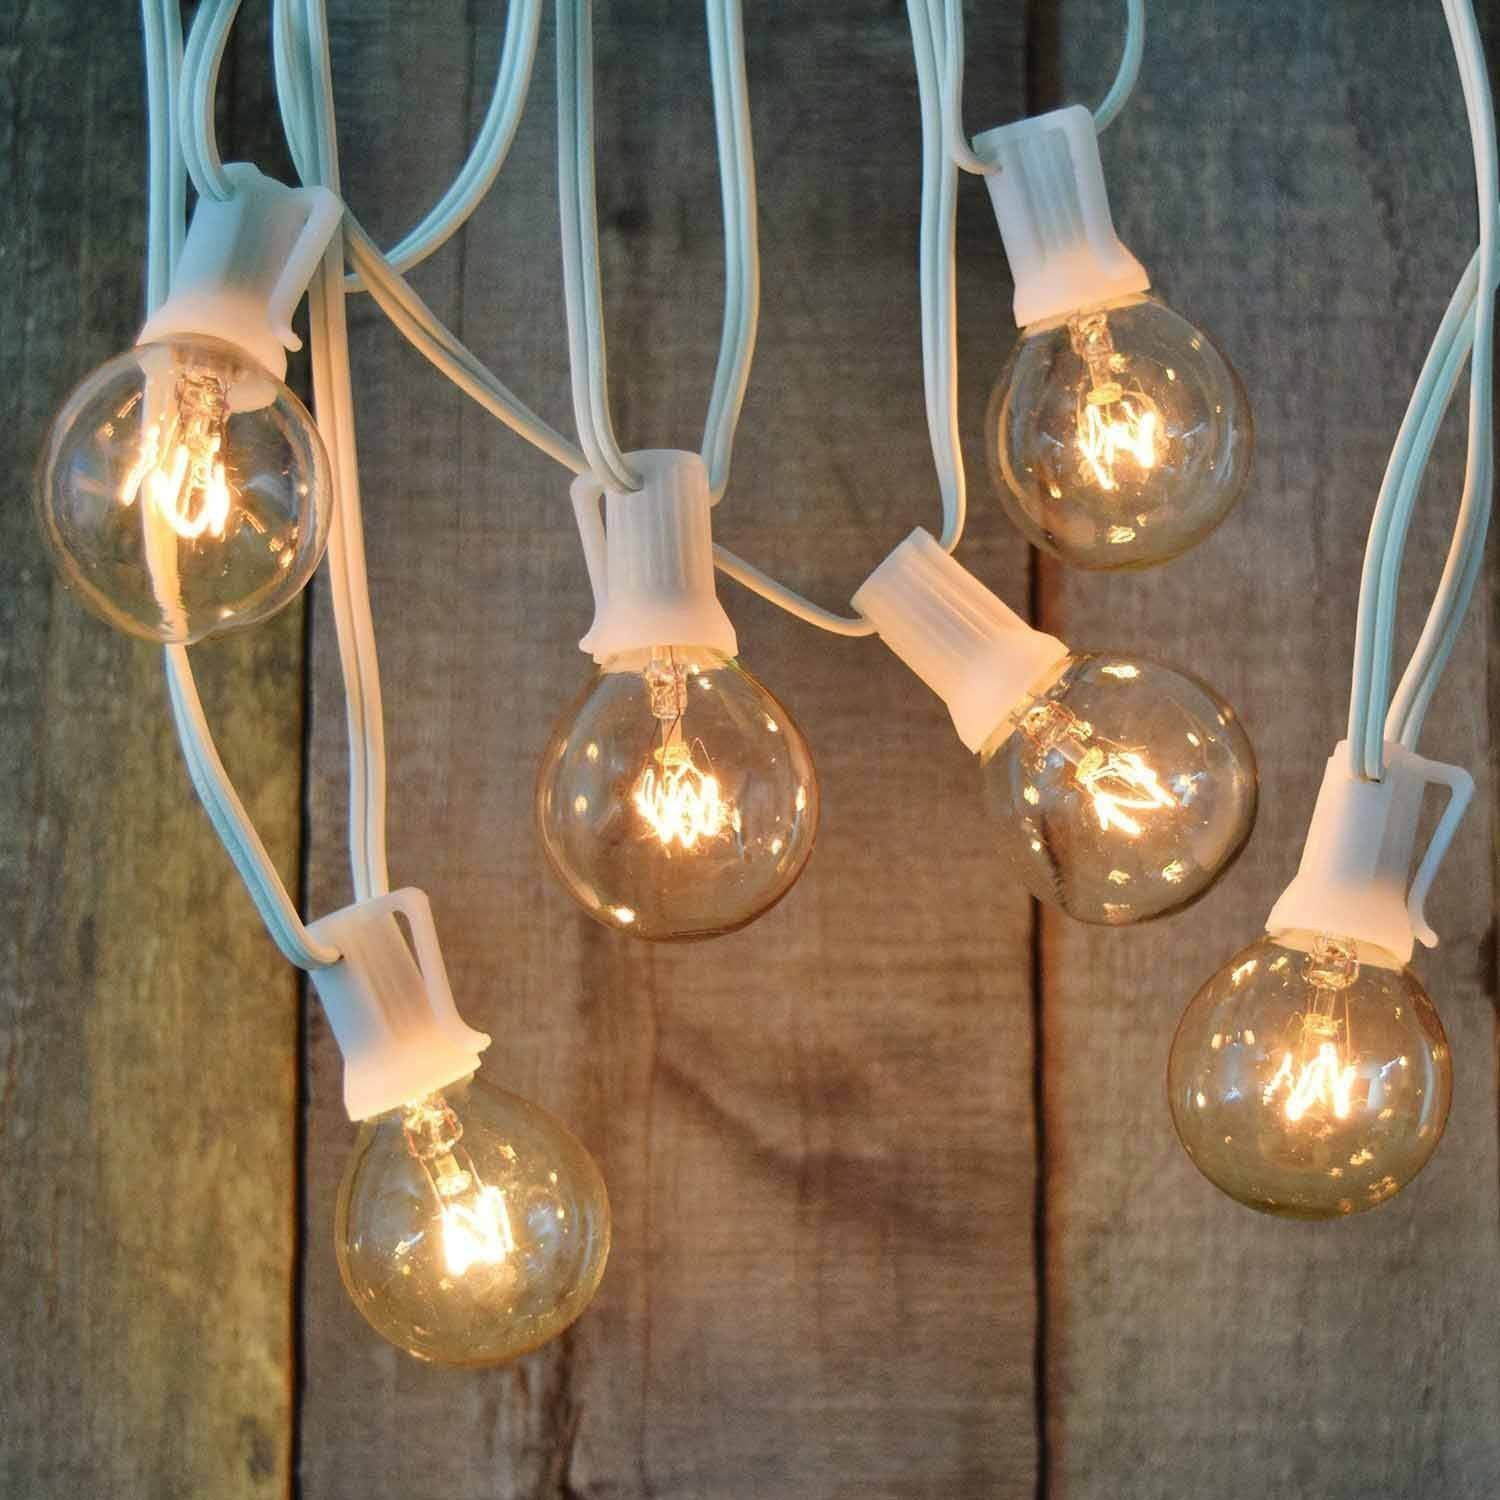 Indoor globe string lights - Brightech Ambience Outdoor String Lights With 25 G40 Clear Globe Bulbs Commercial Quality Ul Listed Indoor And Outdoor Use Natural Warm White Light